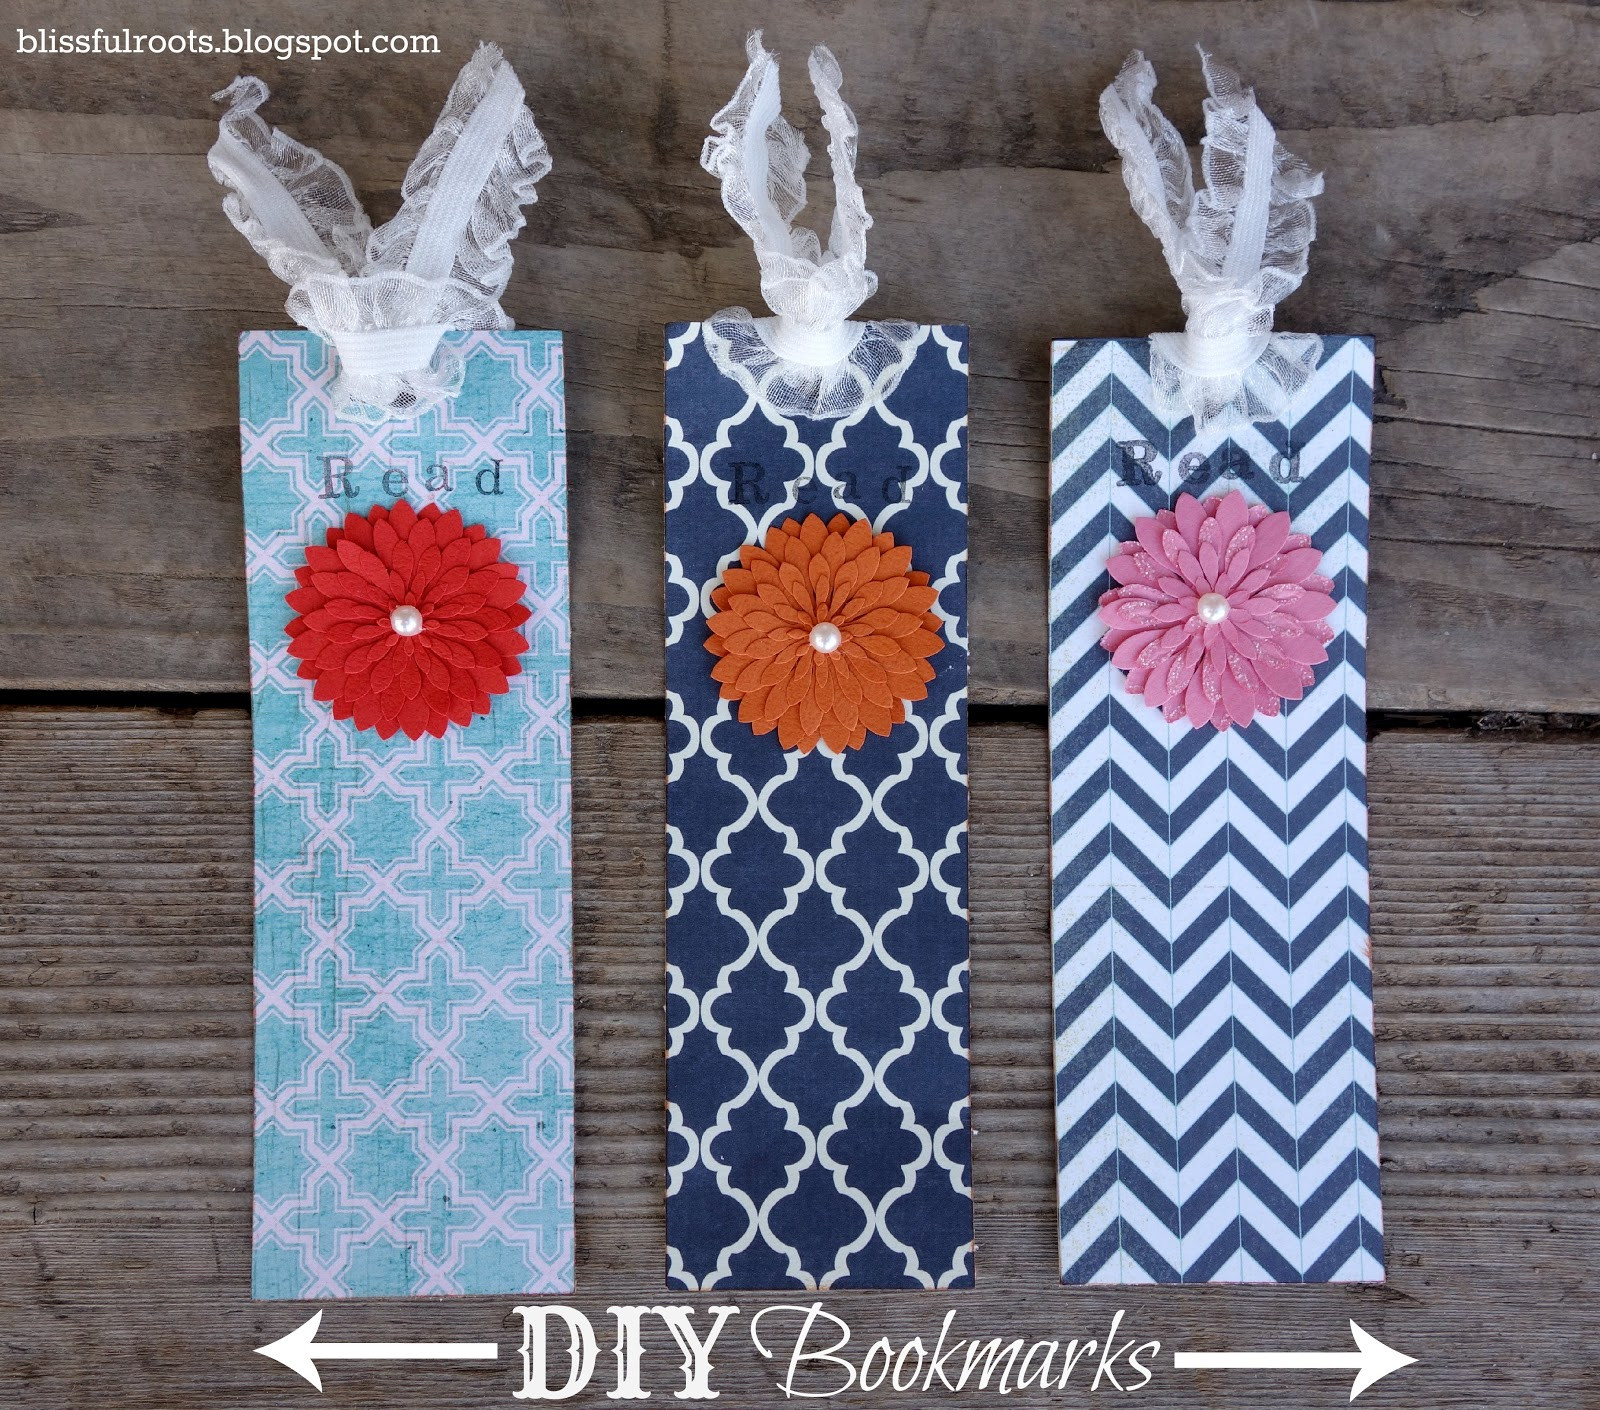 Diy Bookmark  BLISSFUL ROOTS DIY Bookmarks